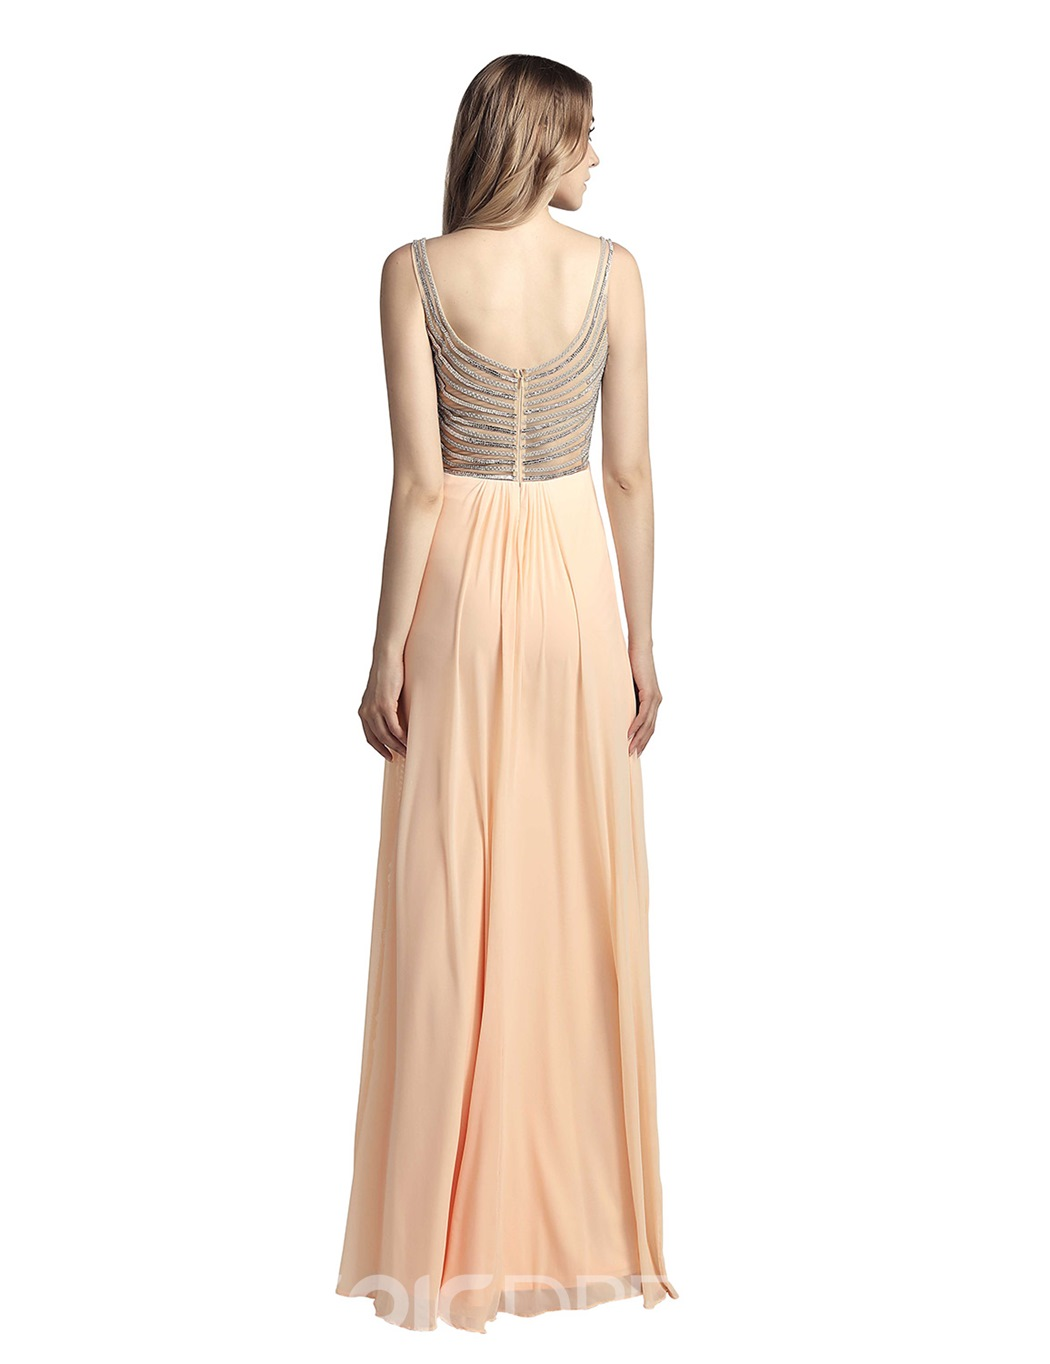 Ericdress Beading Sheath Spaghetti Straps Prom Dress